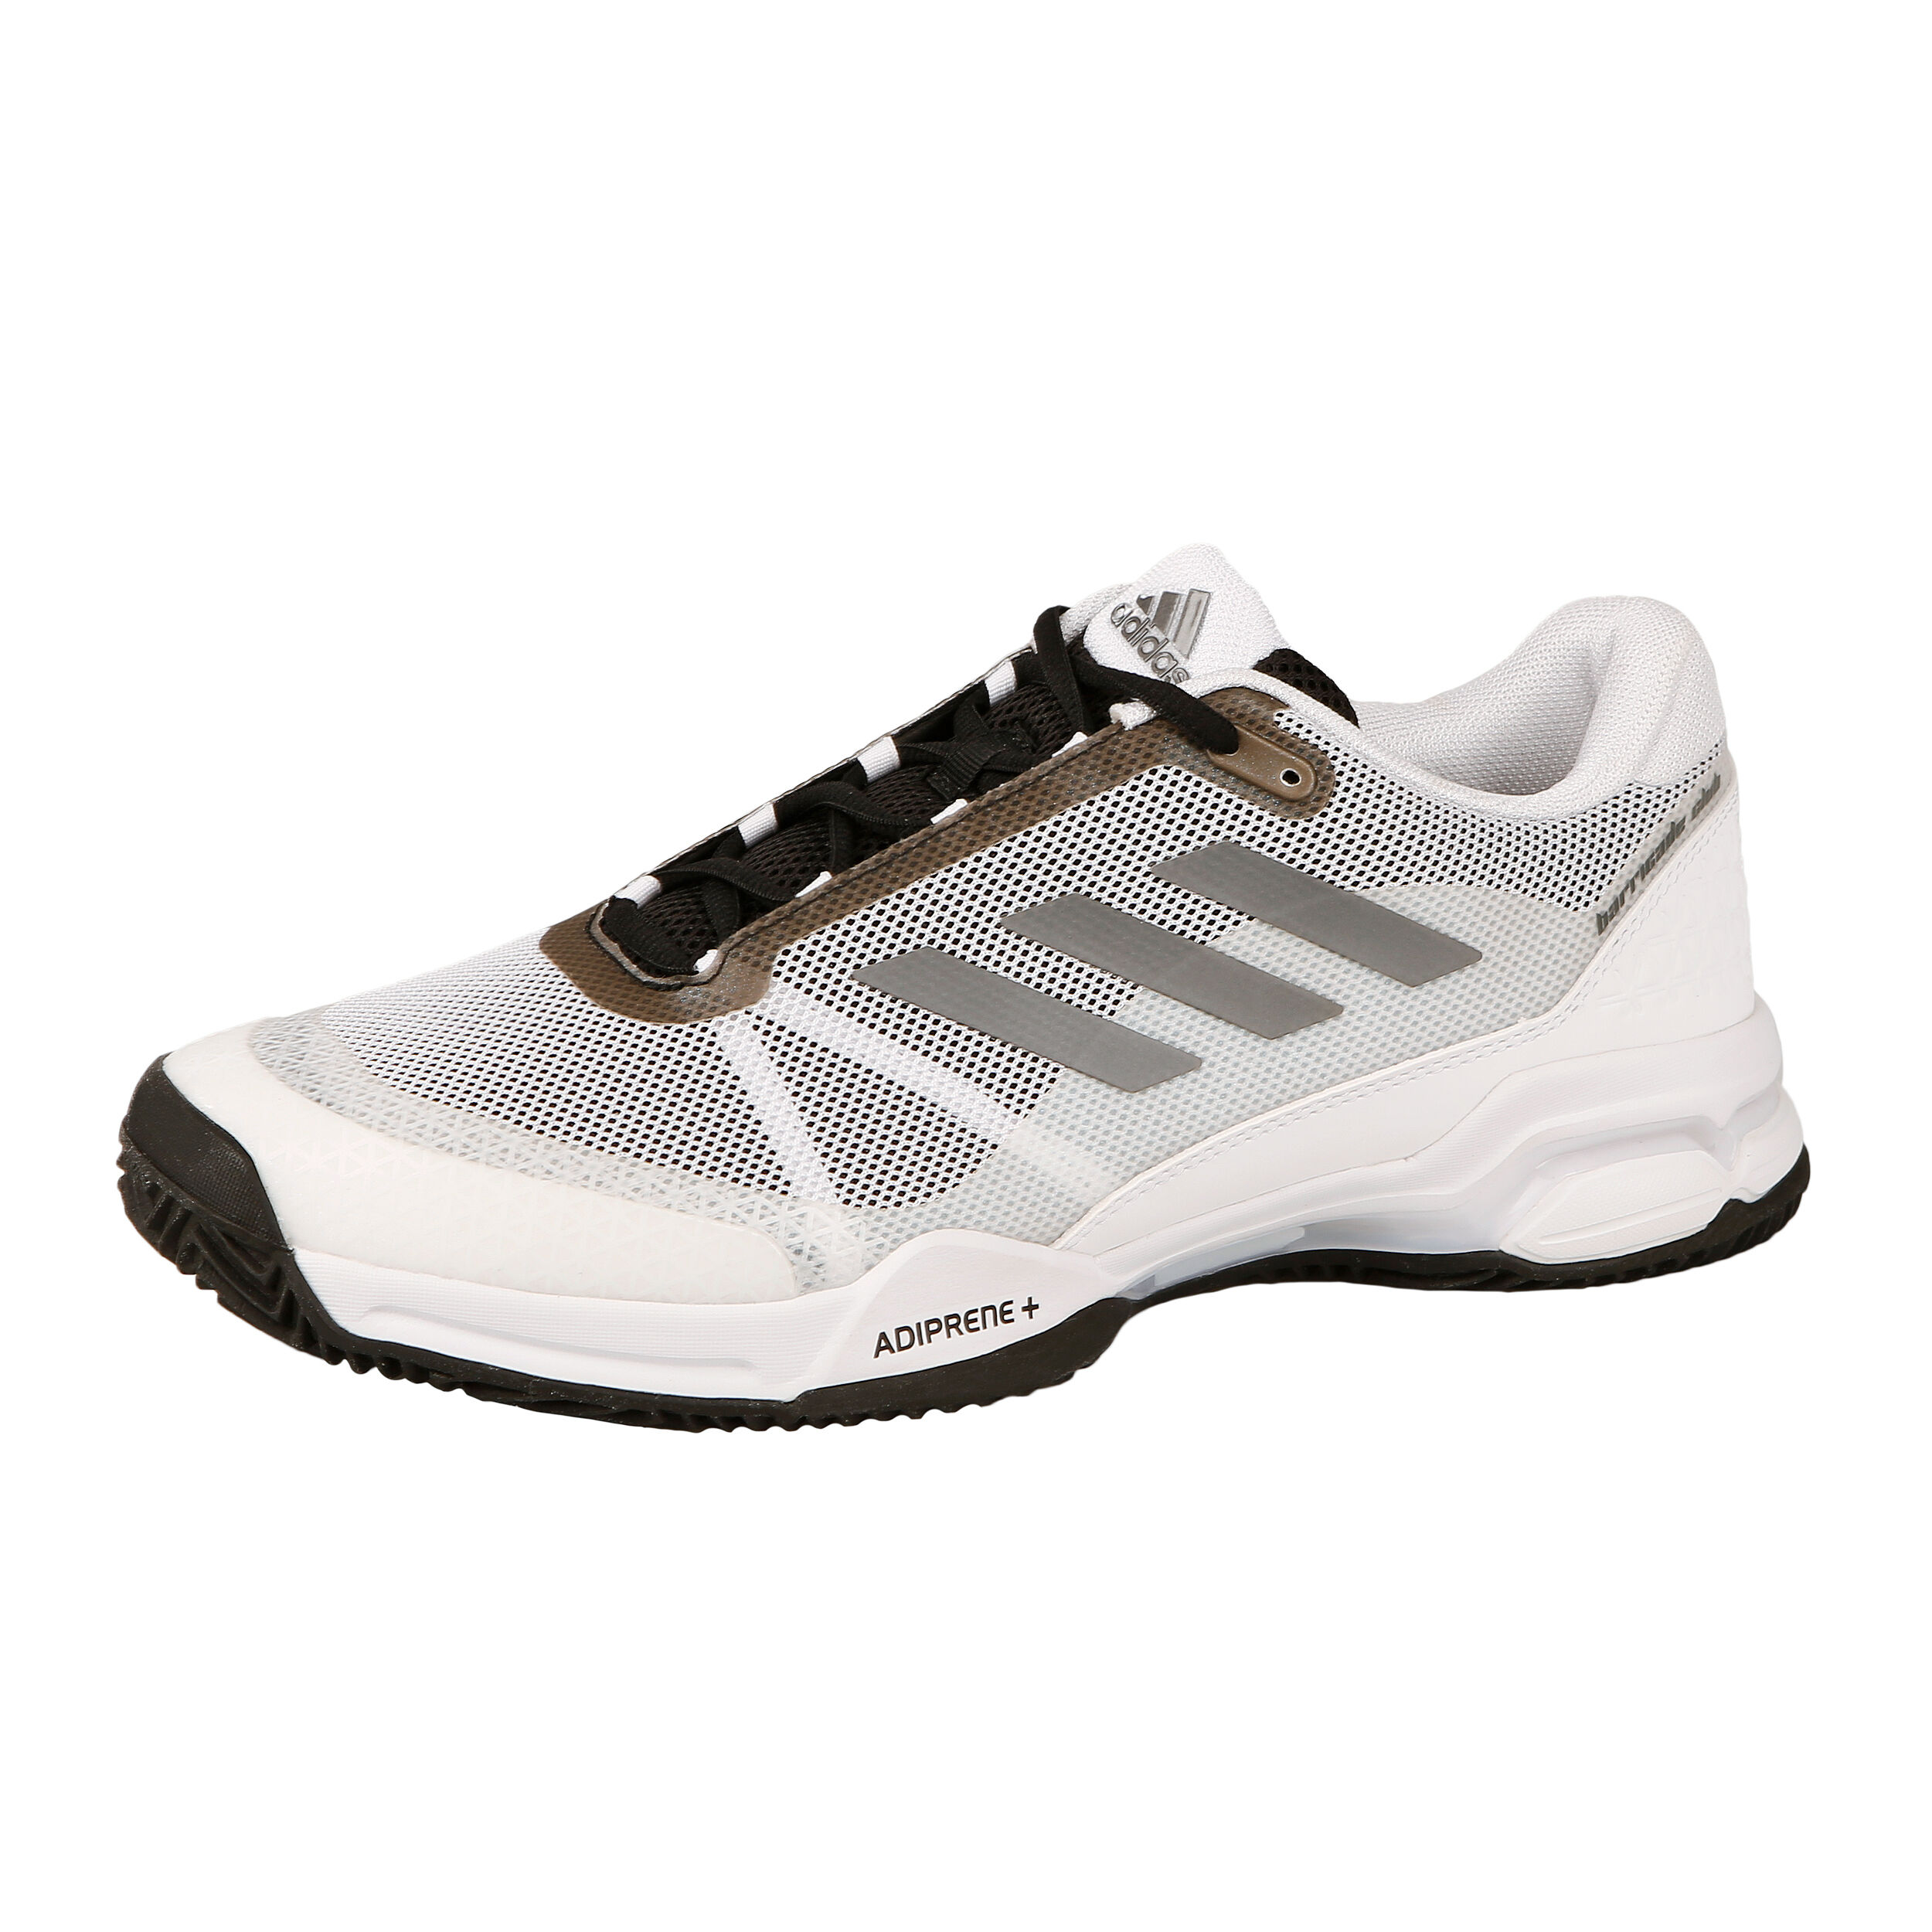 adidas Barricade Club Clay Gravelschoen Heren - Wit, Zwart ...